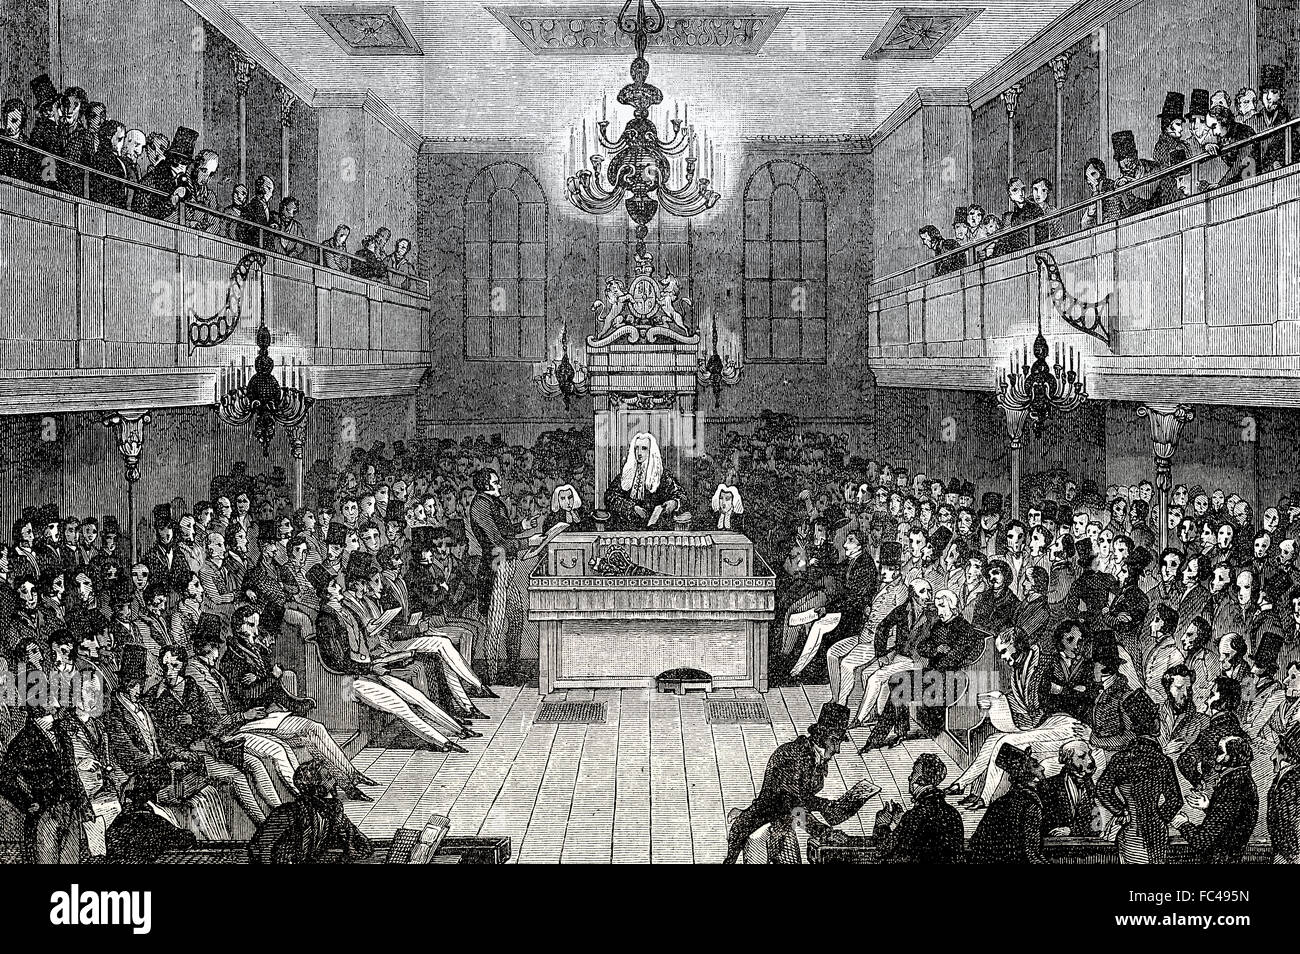 The House of Commons, 1834, London, England - Stock Image